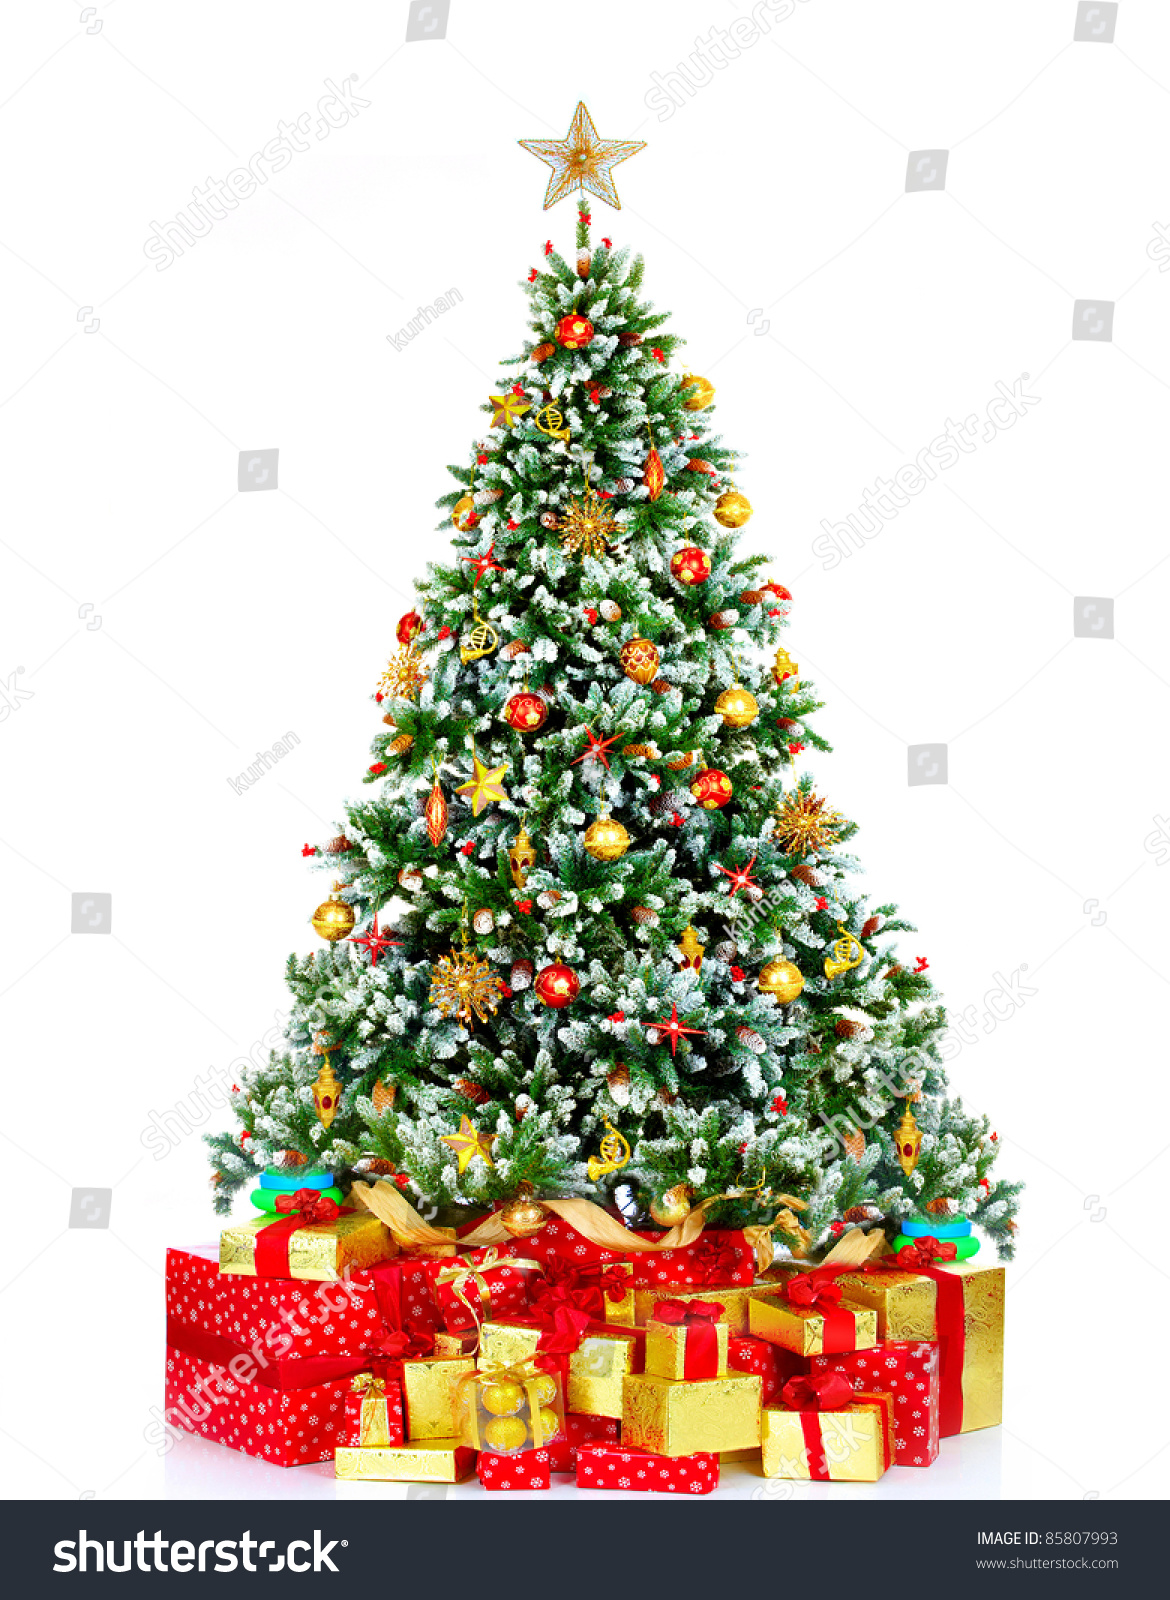 Real christmas trees with presents - Christmas Tree With Presents Over White Background